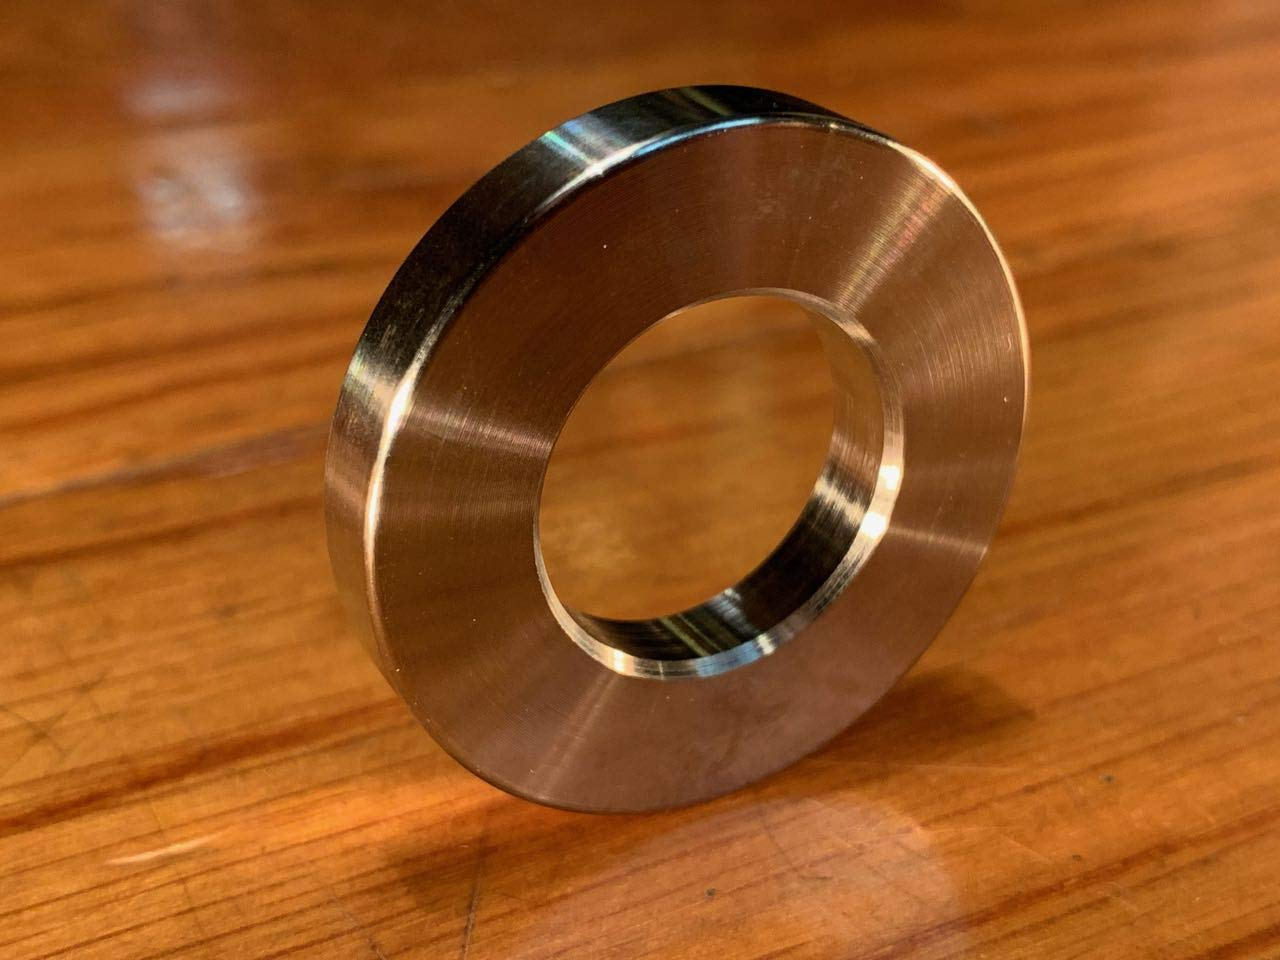 """1 pc Extsw 1//4/"""" ID x 3//4/"""" OD x 1 inch long 316 Stainless Spacer"""